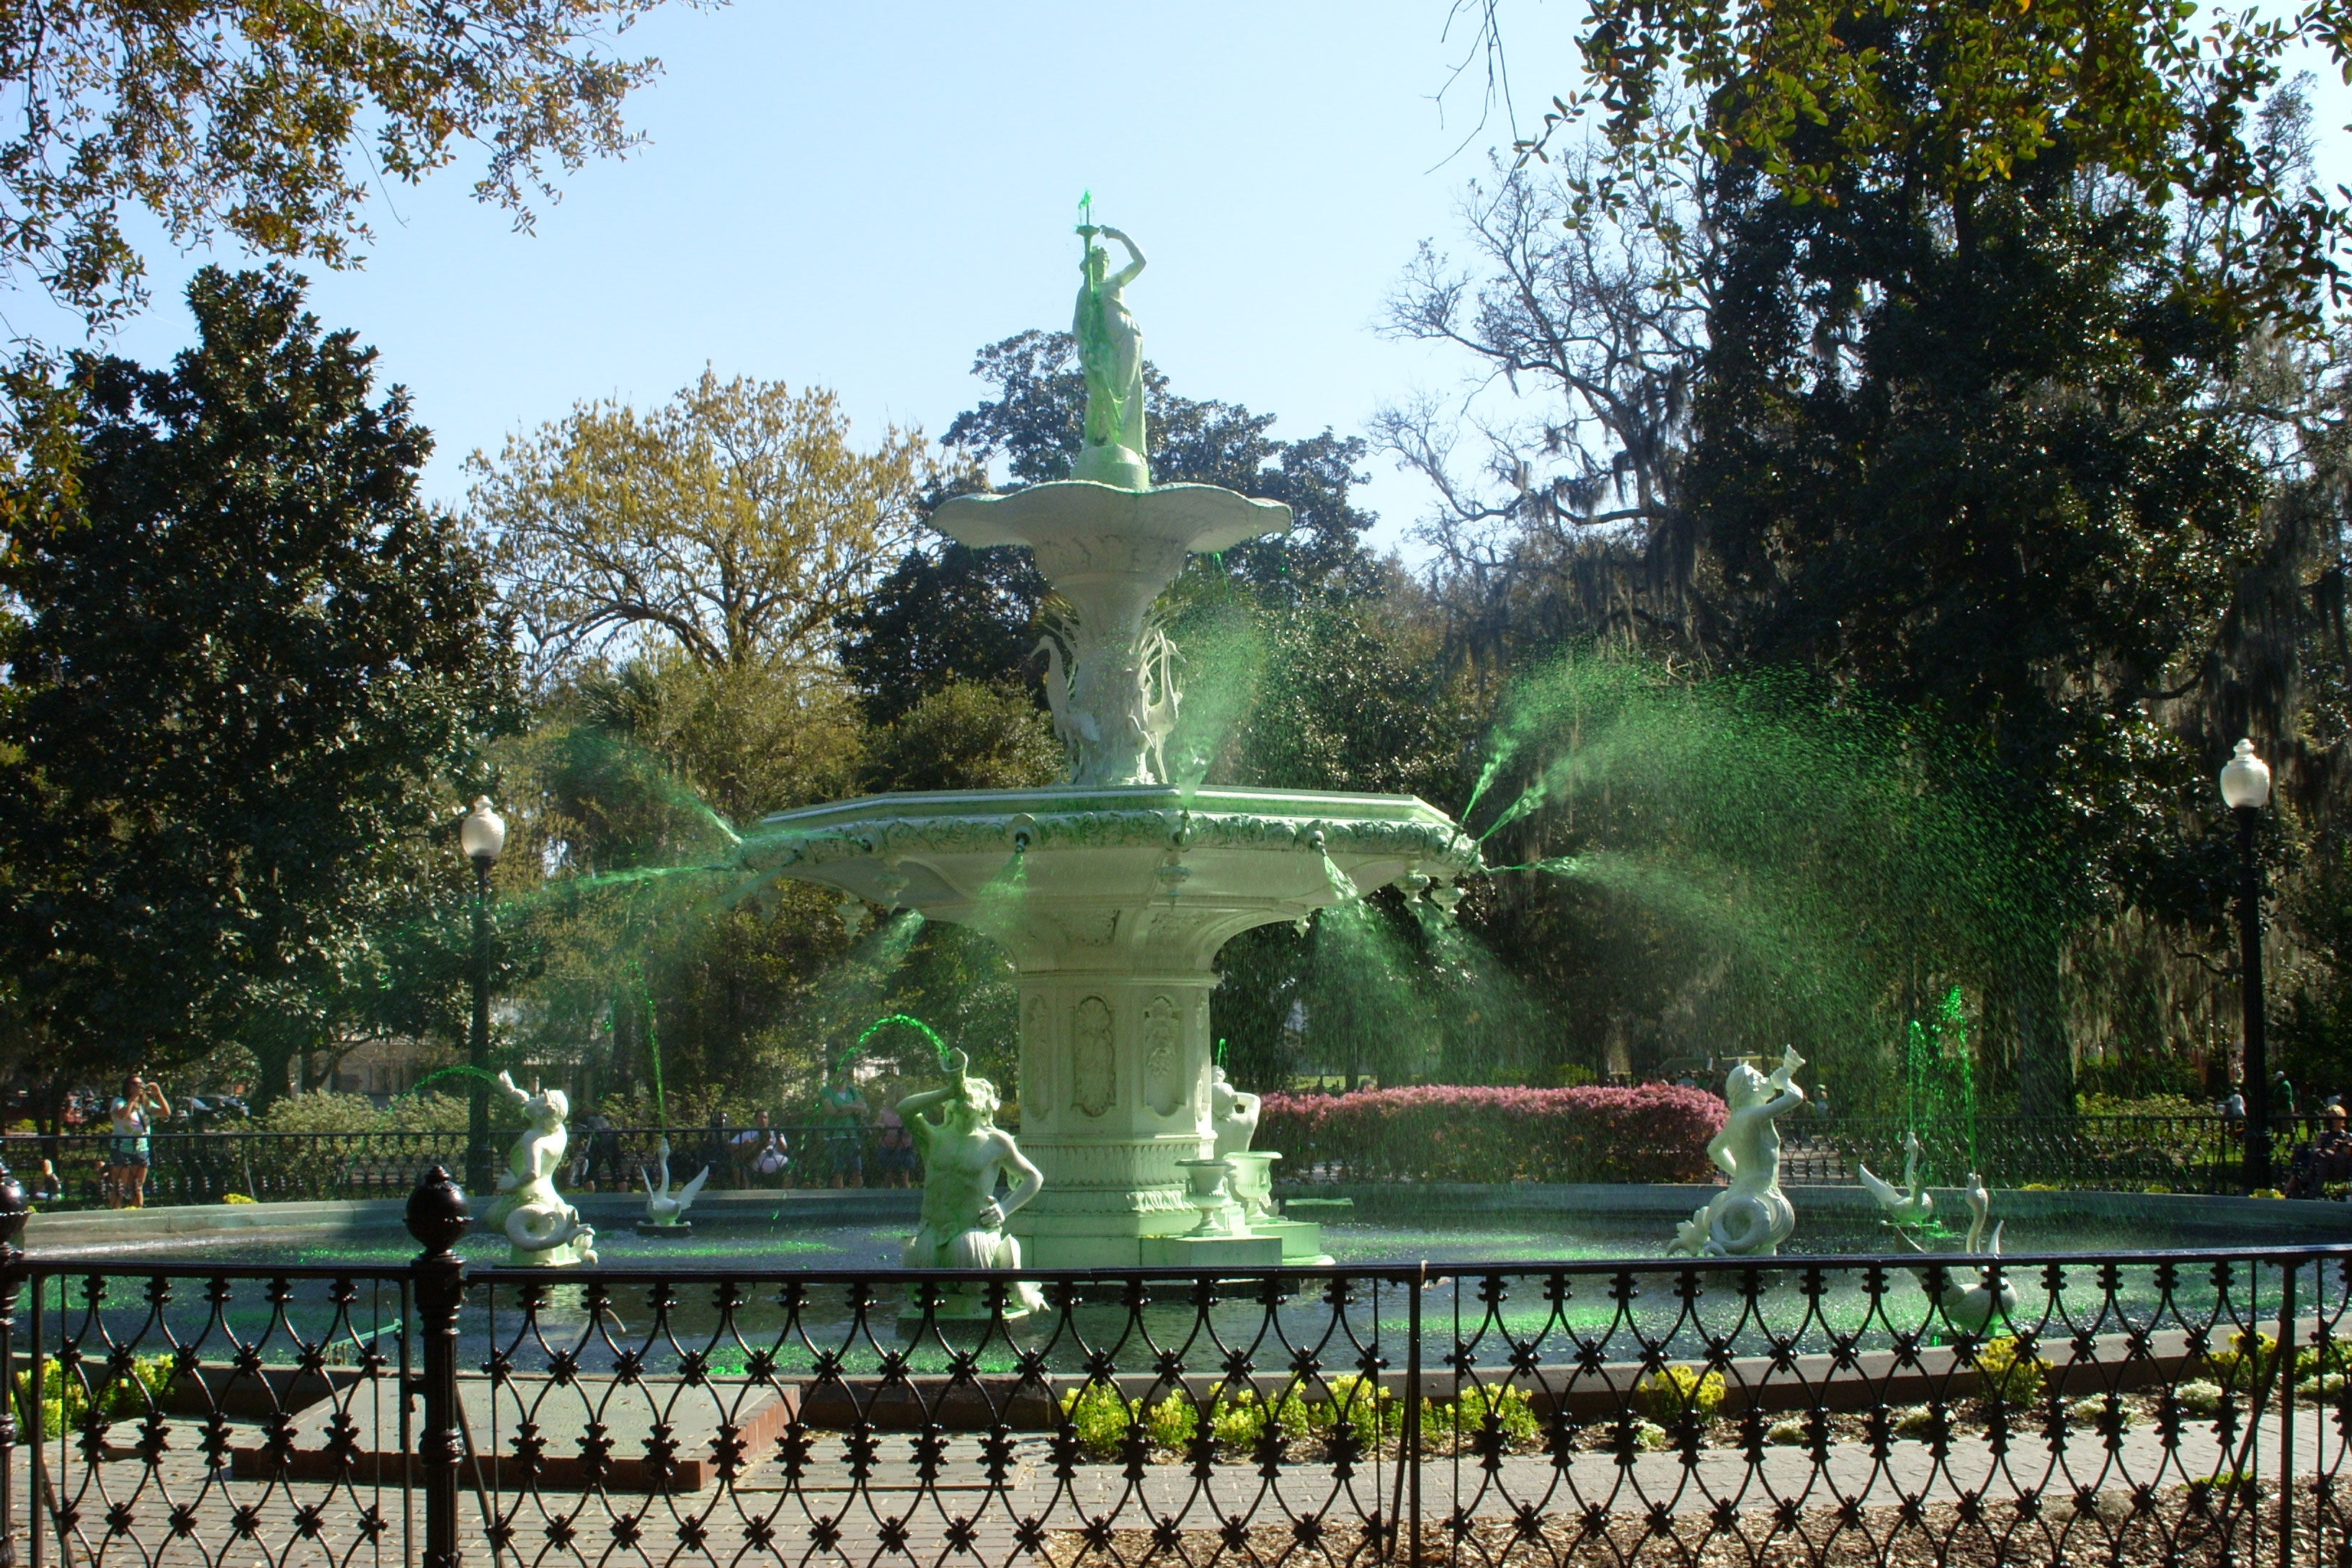 10 Reasons to Celebrate St. Patrick's Day in Savannah